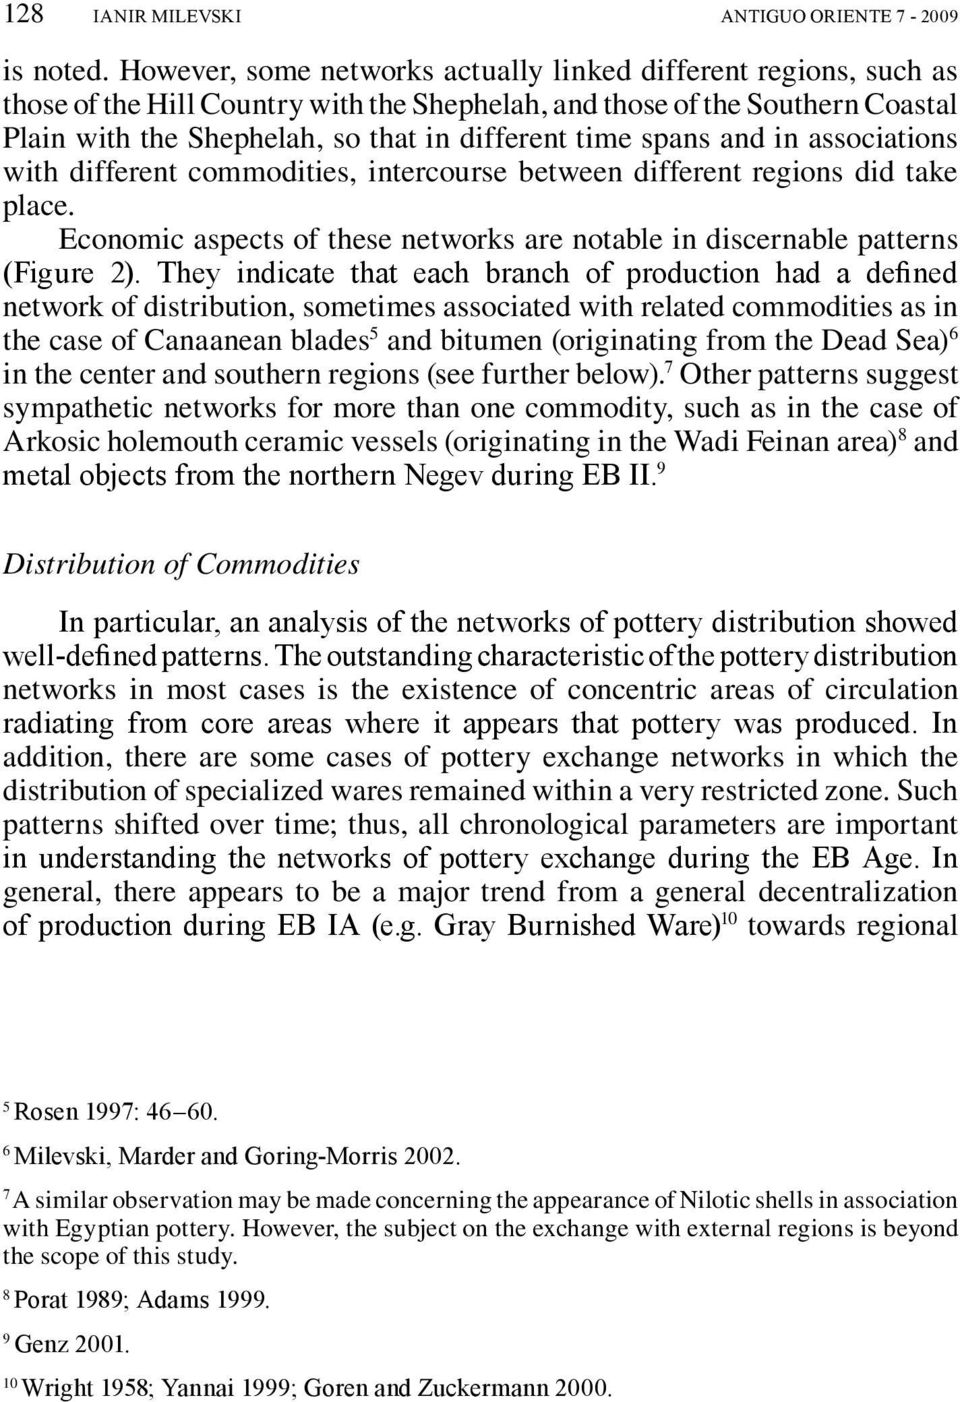 spans and in associations with different commodities, intercourse between different regions did take place. Economic aspects of these networks are notable in discernable patterns (Figure 2).